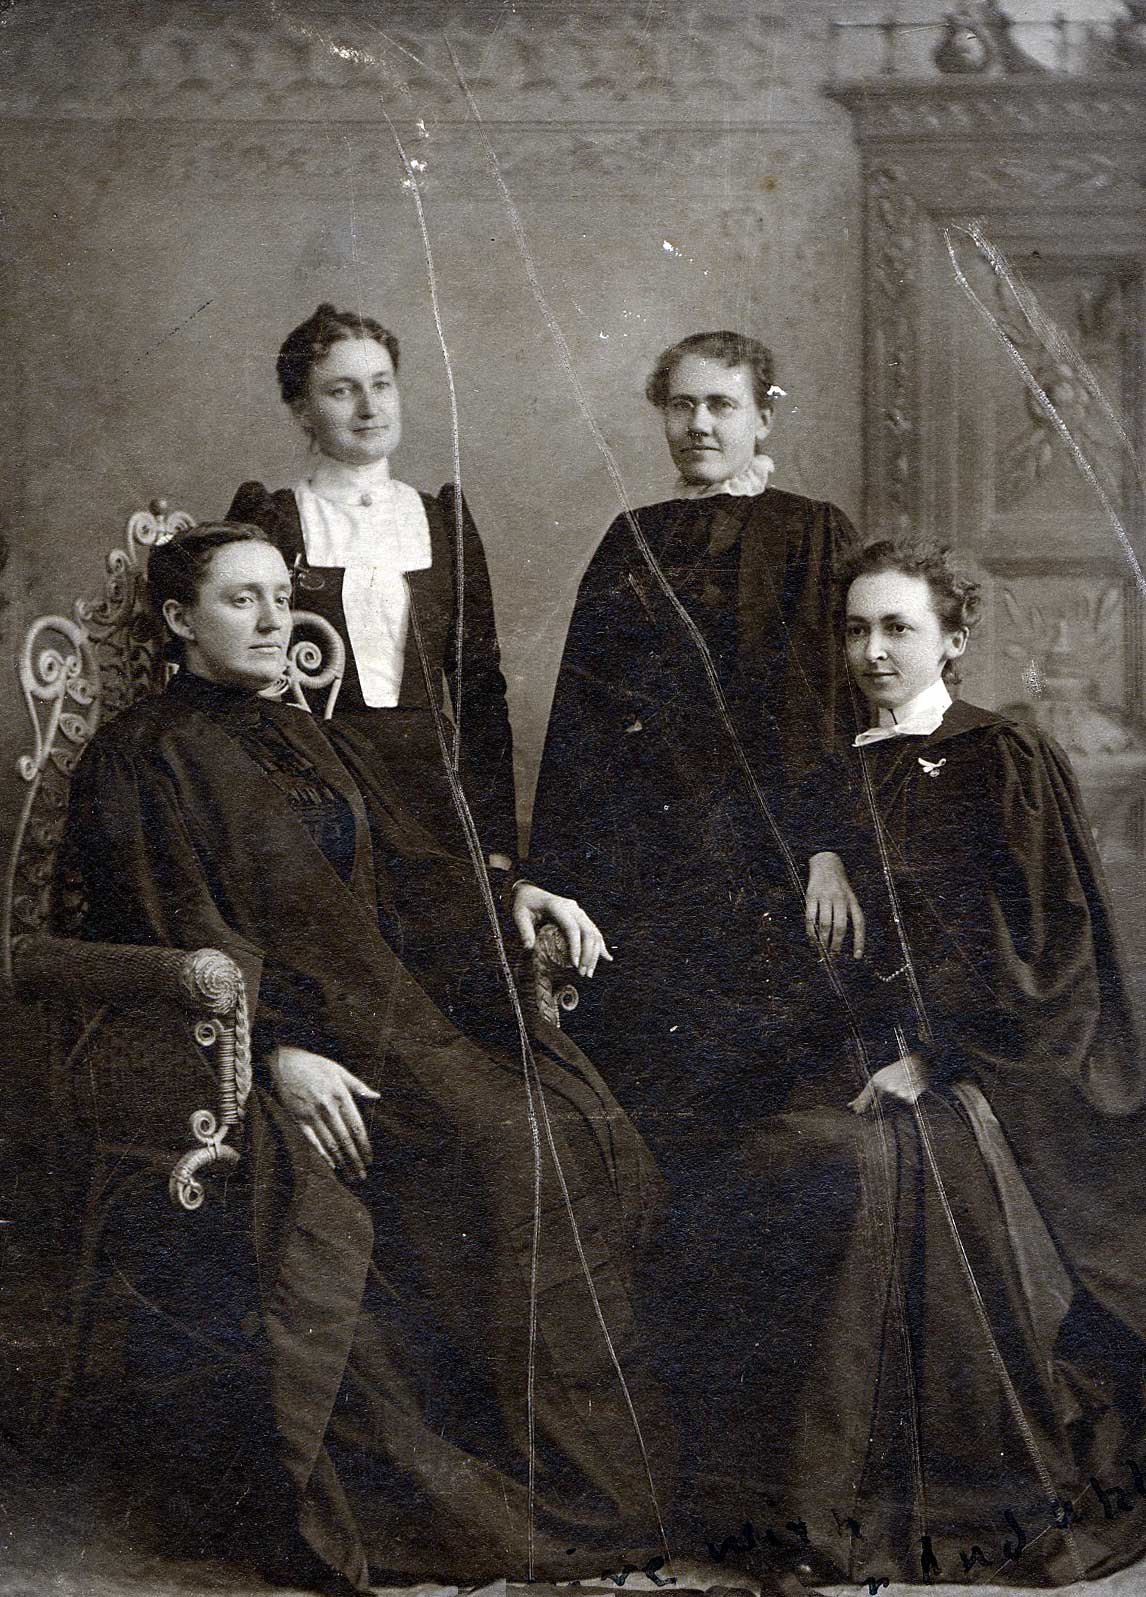 Four women ministers, 1901. St. Lawrence University